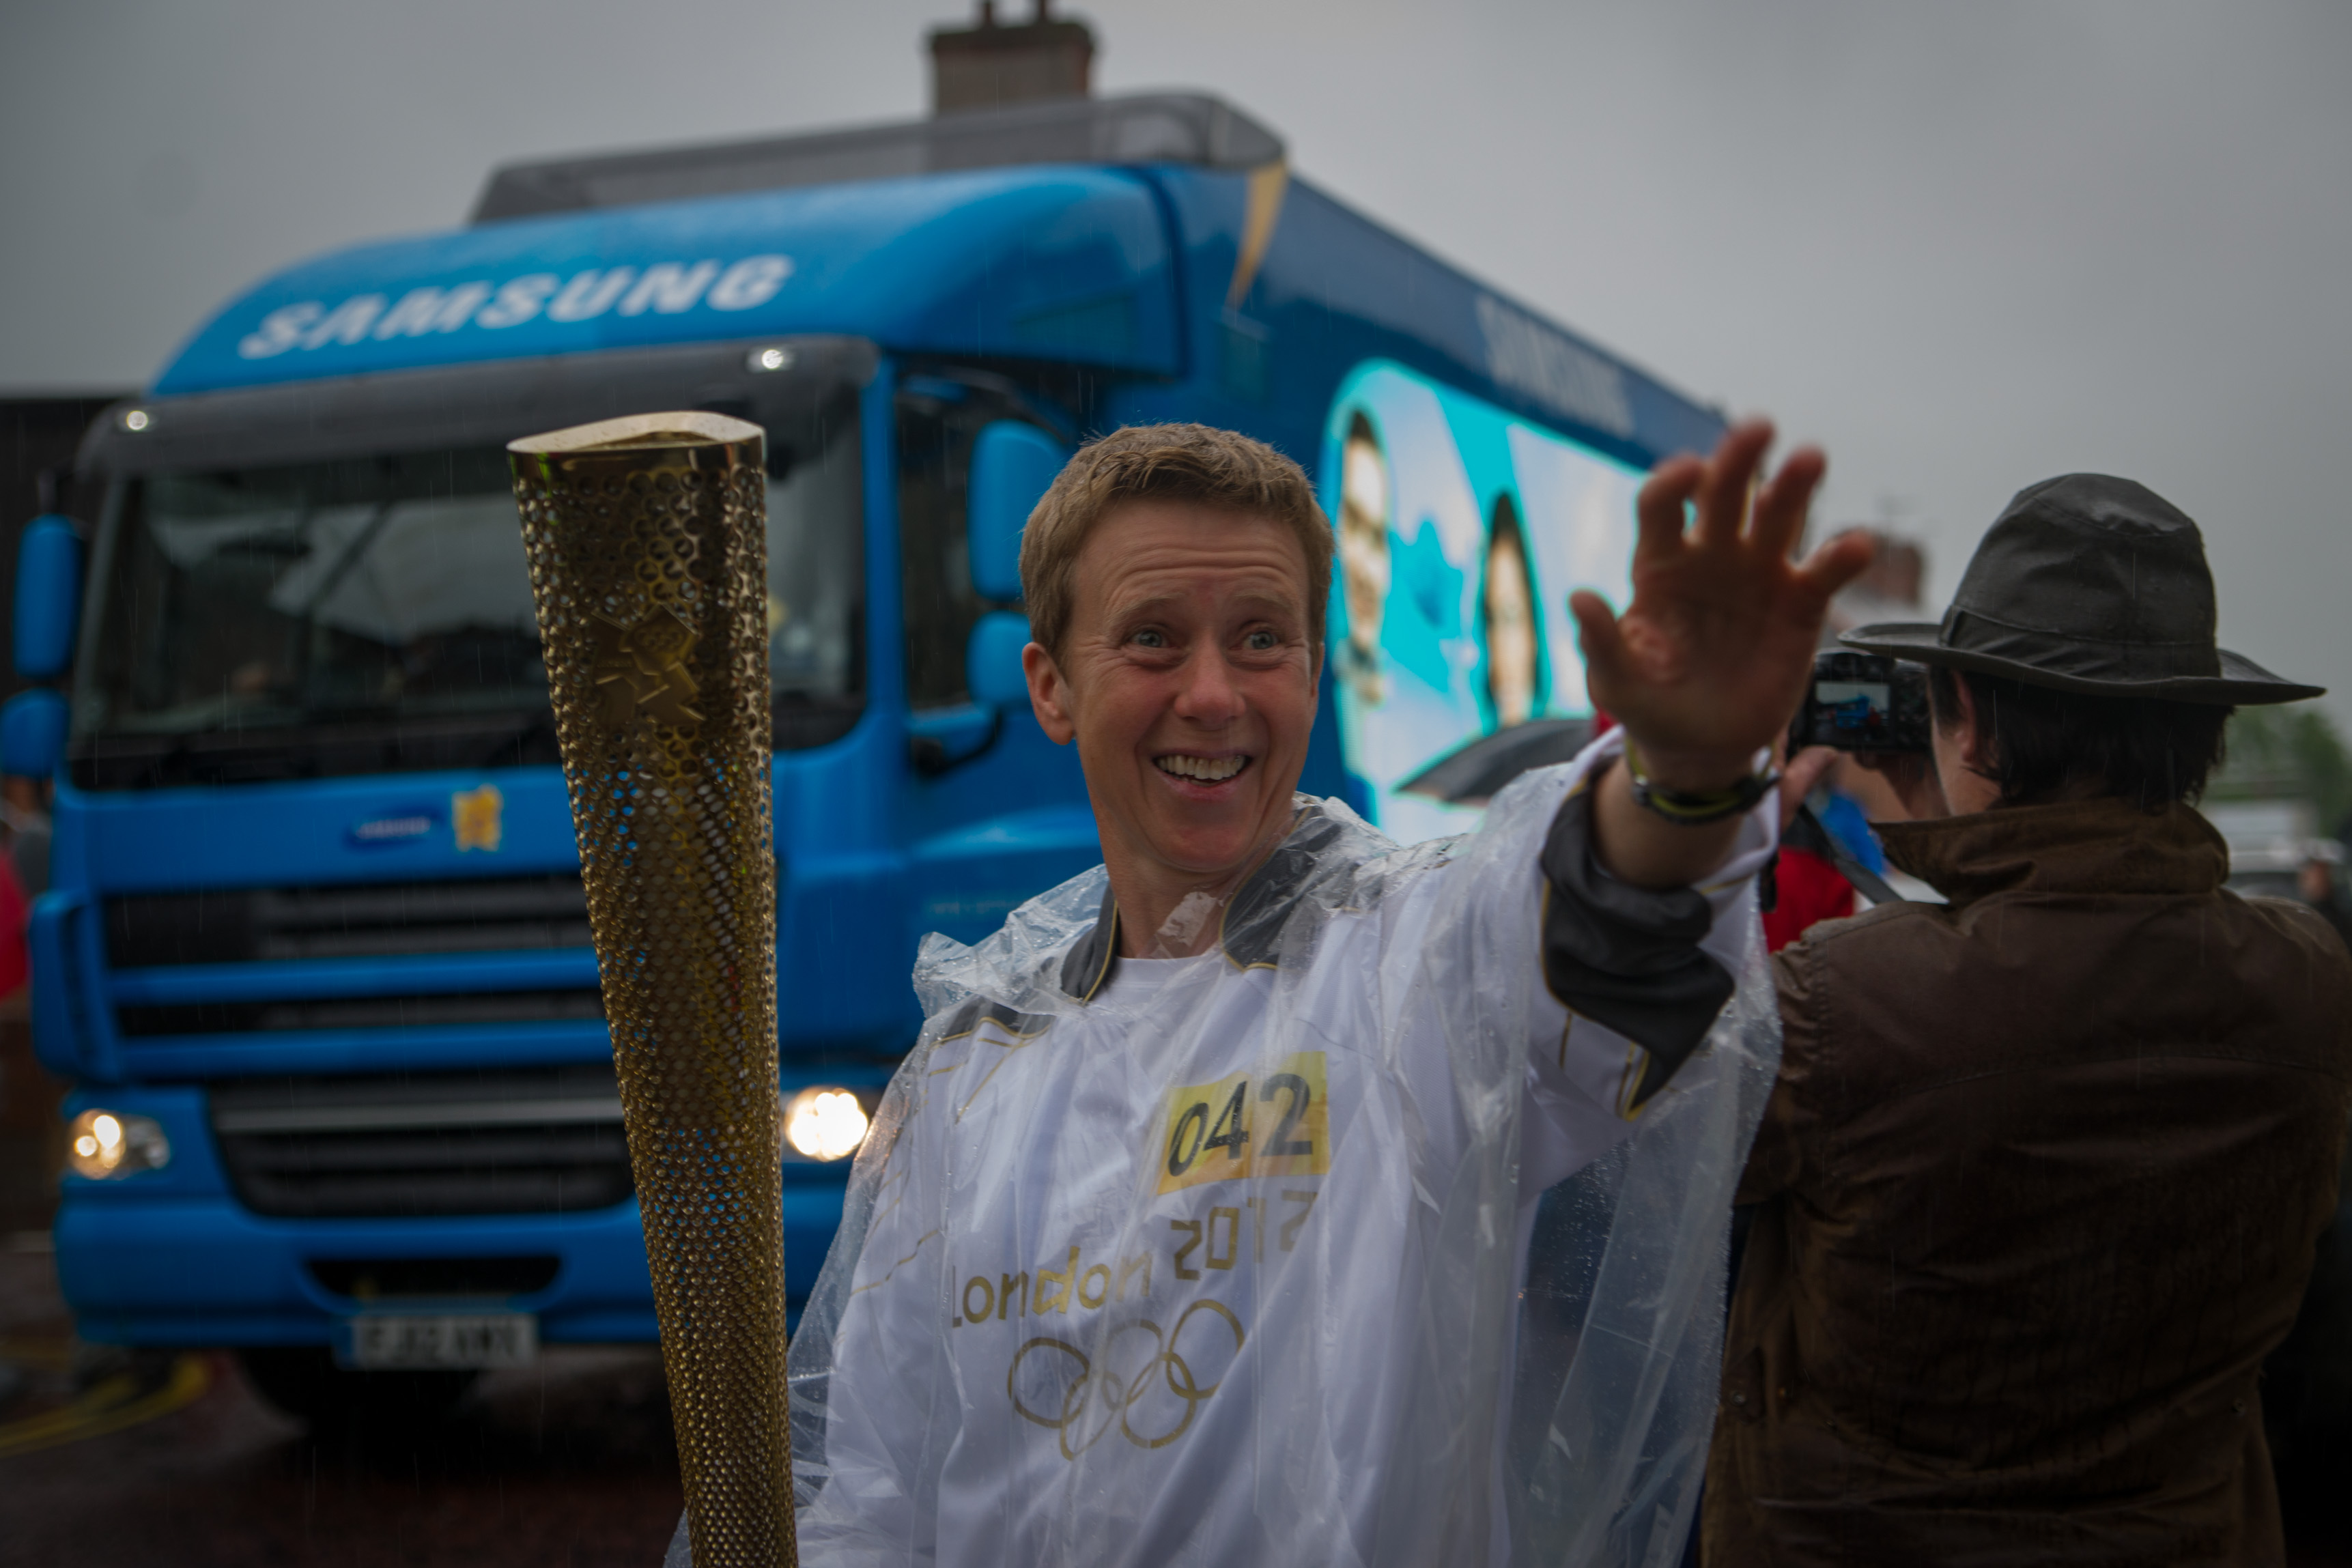 Samsung Olympic Torch, Manchester